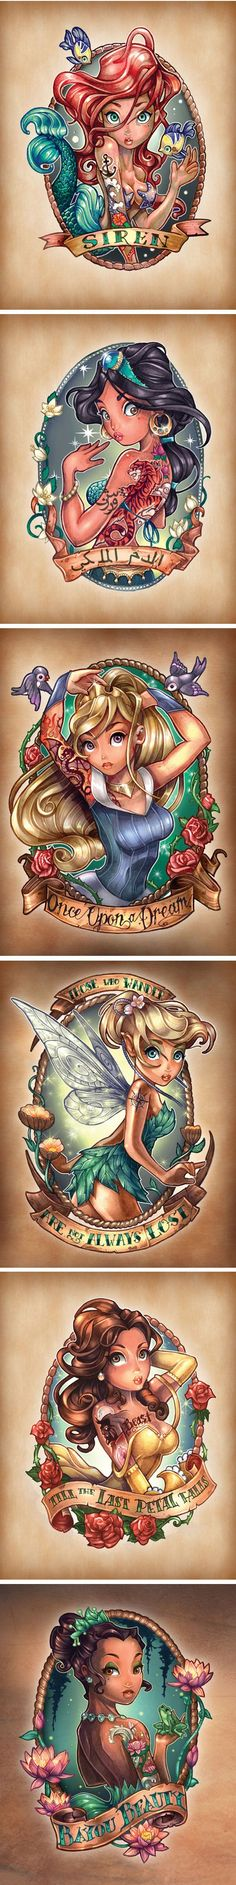 Find out which Disney princess tattoo is best for you based on your personality?!